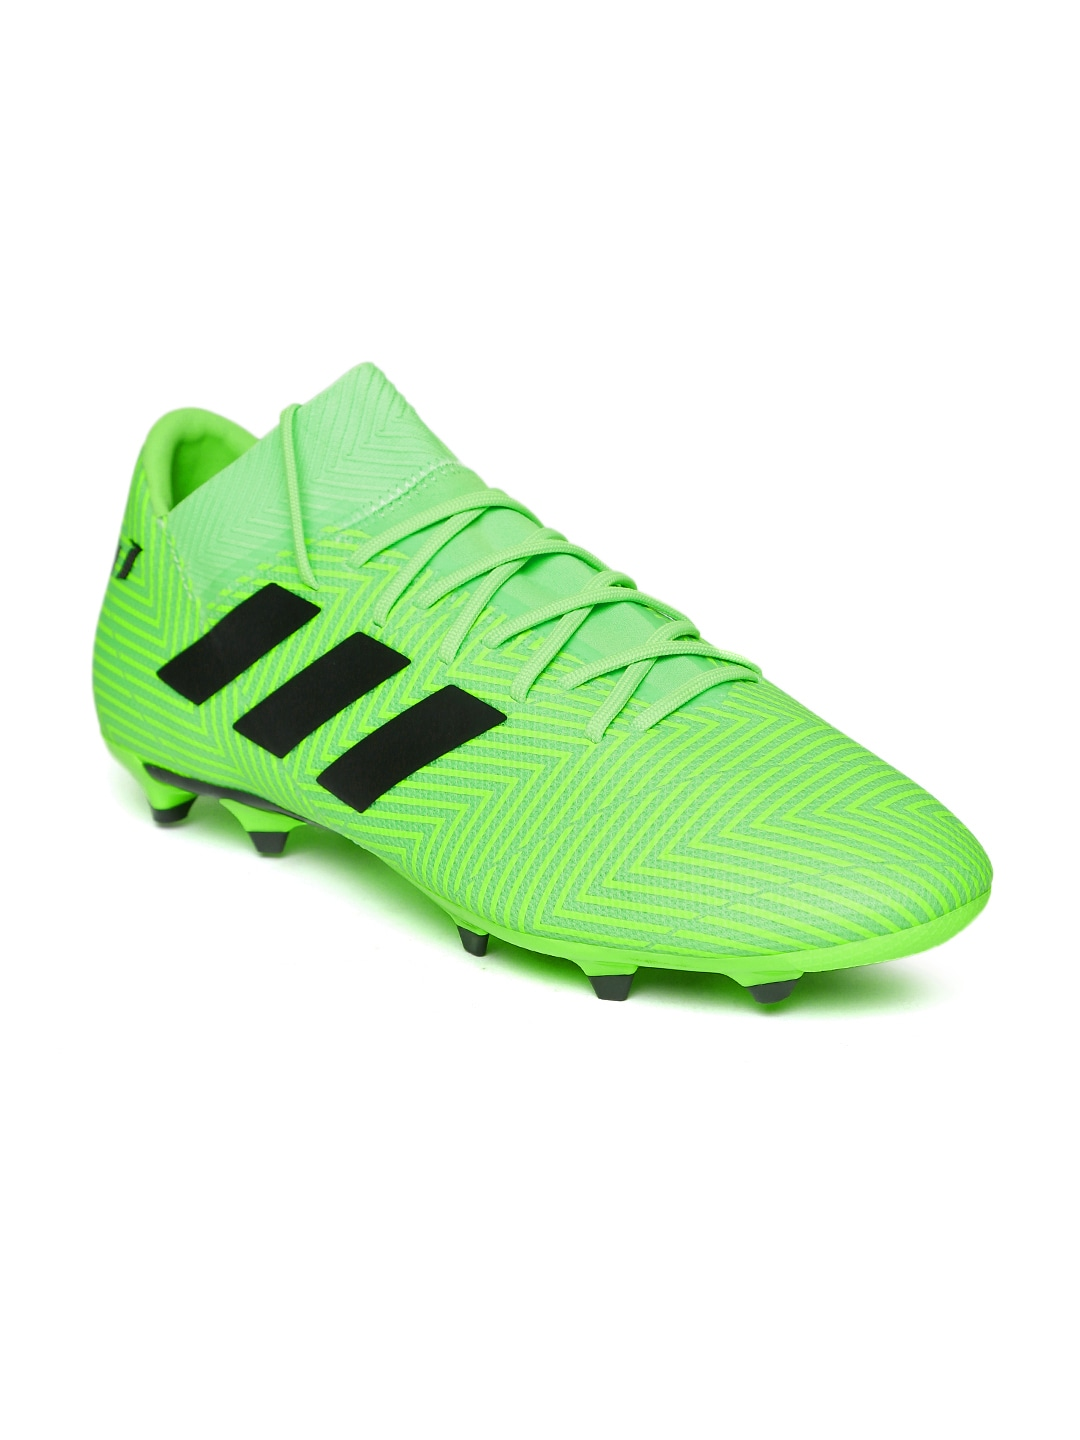 6b602bd90f Adidas Messi - Buy Adidas Messi online in India